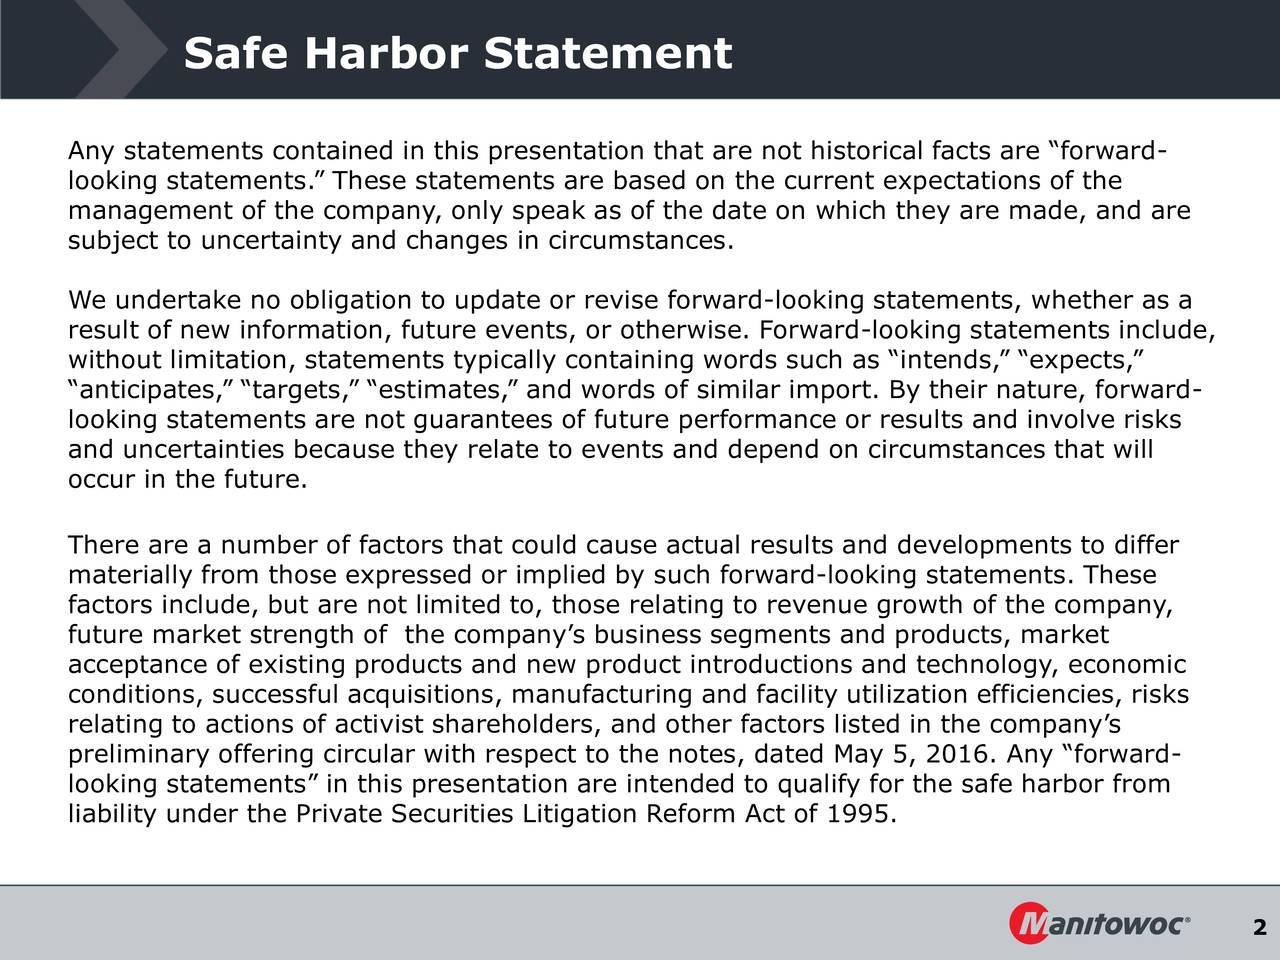 Any statements contained in this presentation that are not historical facts are forward- looking statements. These statements are based on the current expectations of the management of the company, only speak as of the date on which they are made, and are subject to uncertainty and changes in circumstances. We undertake no obligation to update or revise forward-looking statements, whether as a result of new information, future events, or otherwise. Forward-looking statements include, without limitation, statements typically containing words such as intends, expects, anticipates, targets, estimates, and words of similar import. By their nature, forward- looking statements are not guarantees of future performance or results and involve risks and uncertainties because they relate to events and depend on circumstances that will occur in the future. There are a number of factors that could cause actual results and developments to differ materially from those expressed or implied by such forward-looking statements. These factors include, but are not limited to, those relating to revenue growth of the company, future market strength of the companys business segments and products, market acceptance of existing products and new product introductions and technology, economic conditions, successful acquisitions, manufacturing and facility utilization efficiencies, risks relating to actions of activist shareholders, and other factors listed in the companys preliminary offering circular with respect to the notes, dated May 5, 2016. Any forward- looking statements in this presentation are intended to qualify for the safe harbor from liability under the Private Securities Litigation Reform Act of 1995. 2